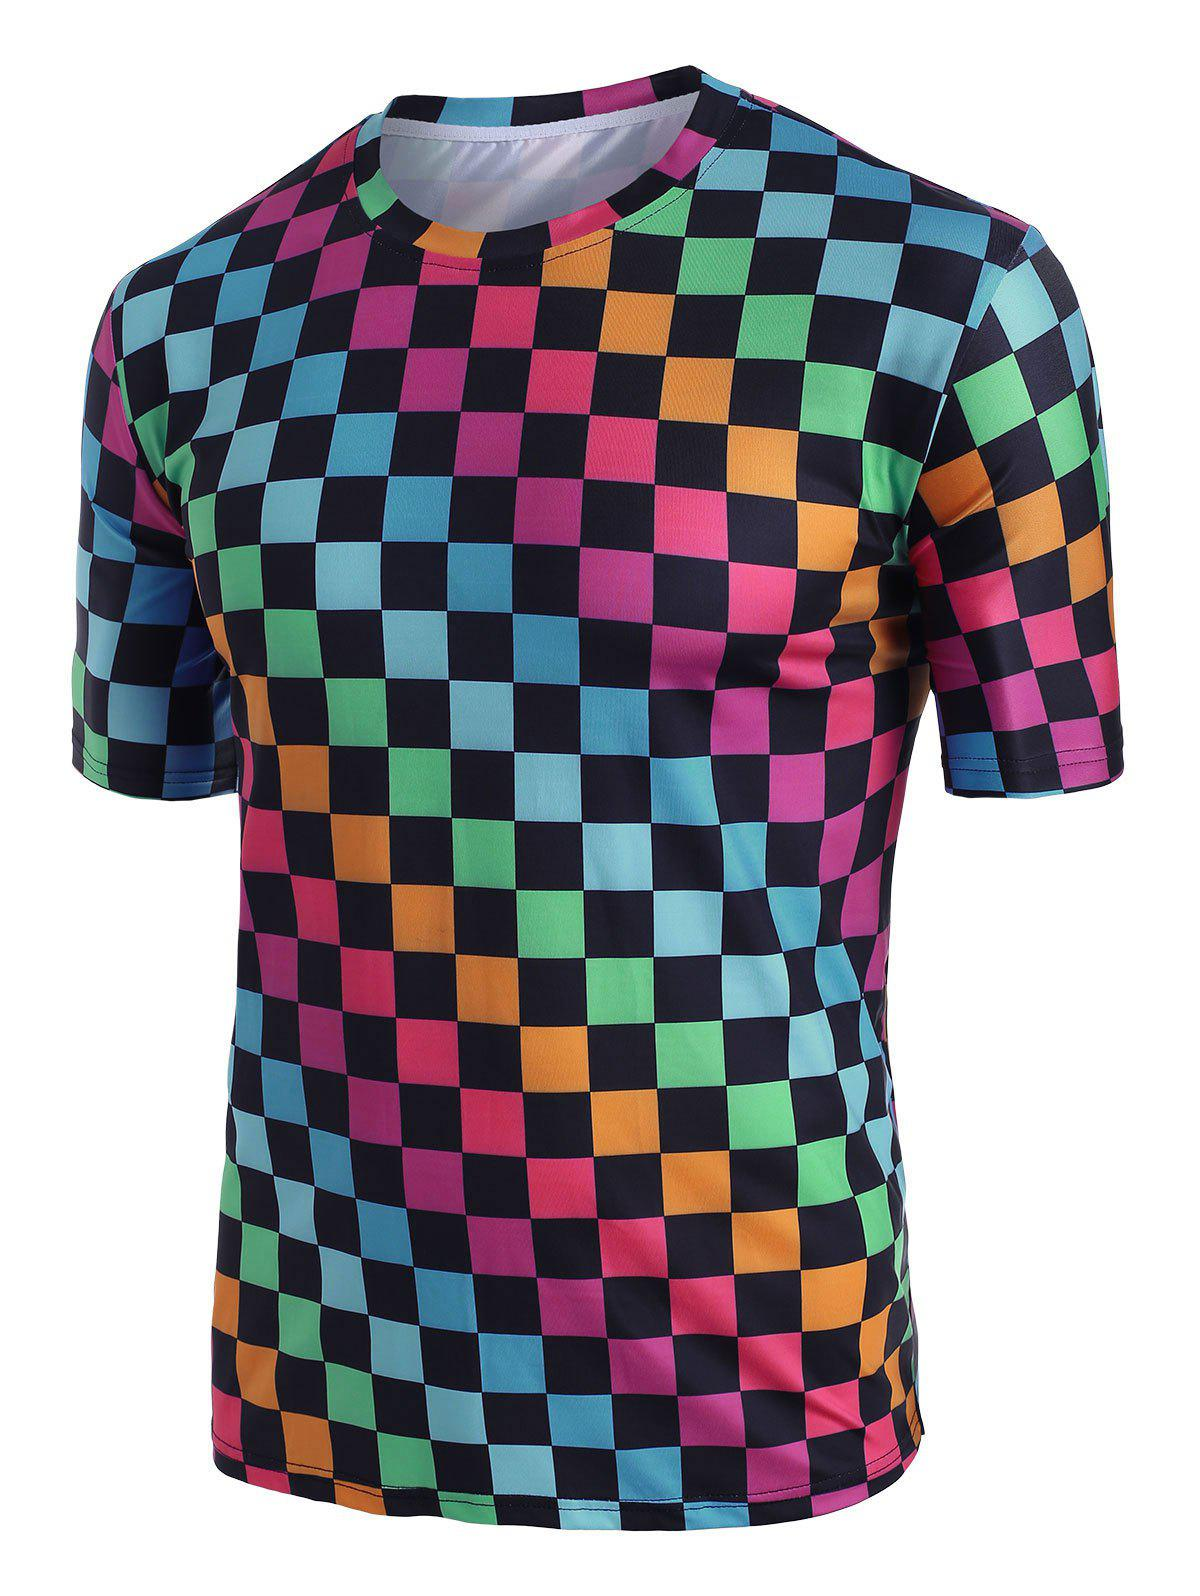 Fancy Colorblock Checkered Print Short Sleeve T-shirt